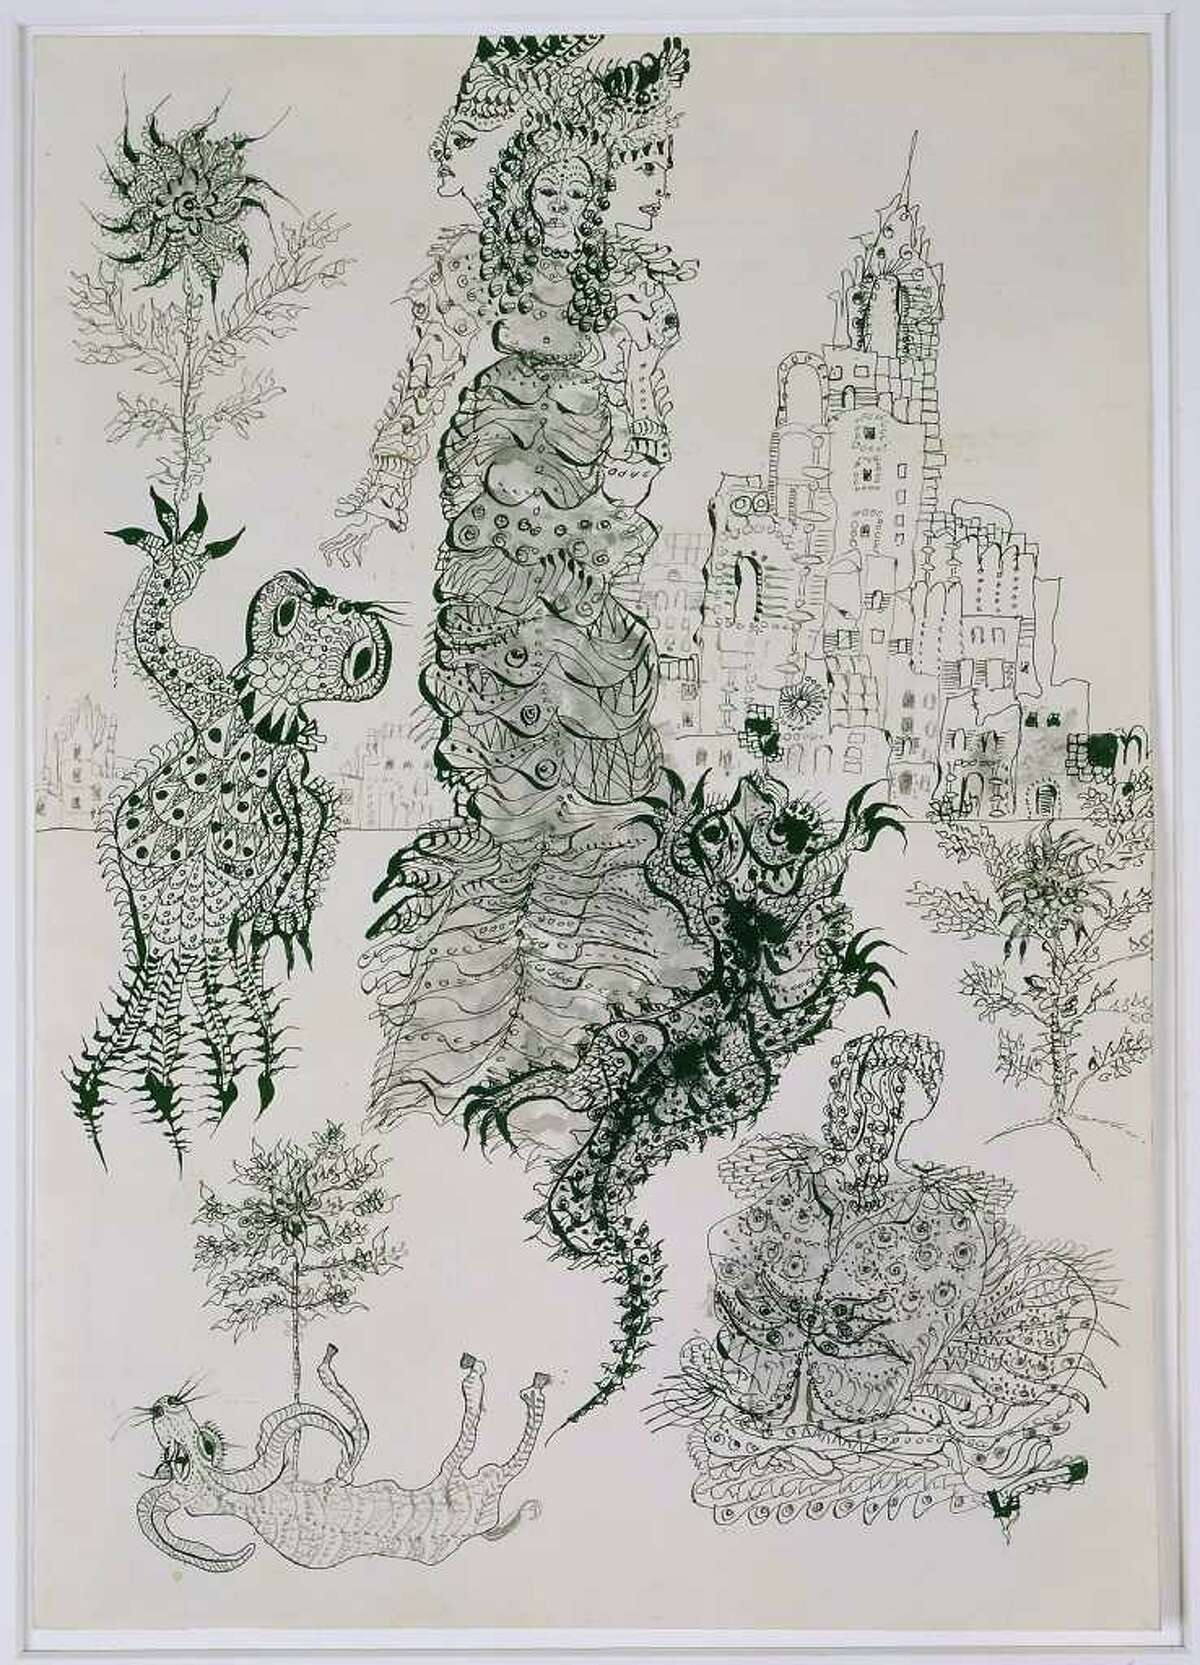 Unica Zürn, a Surrealist writer who was diagnosed as a schizophrenic, created ink drawings such as Untitled (1960-1961) when she was hospitalized.